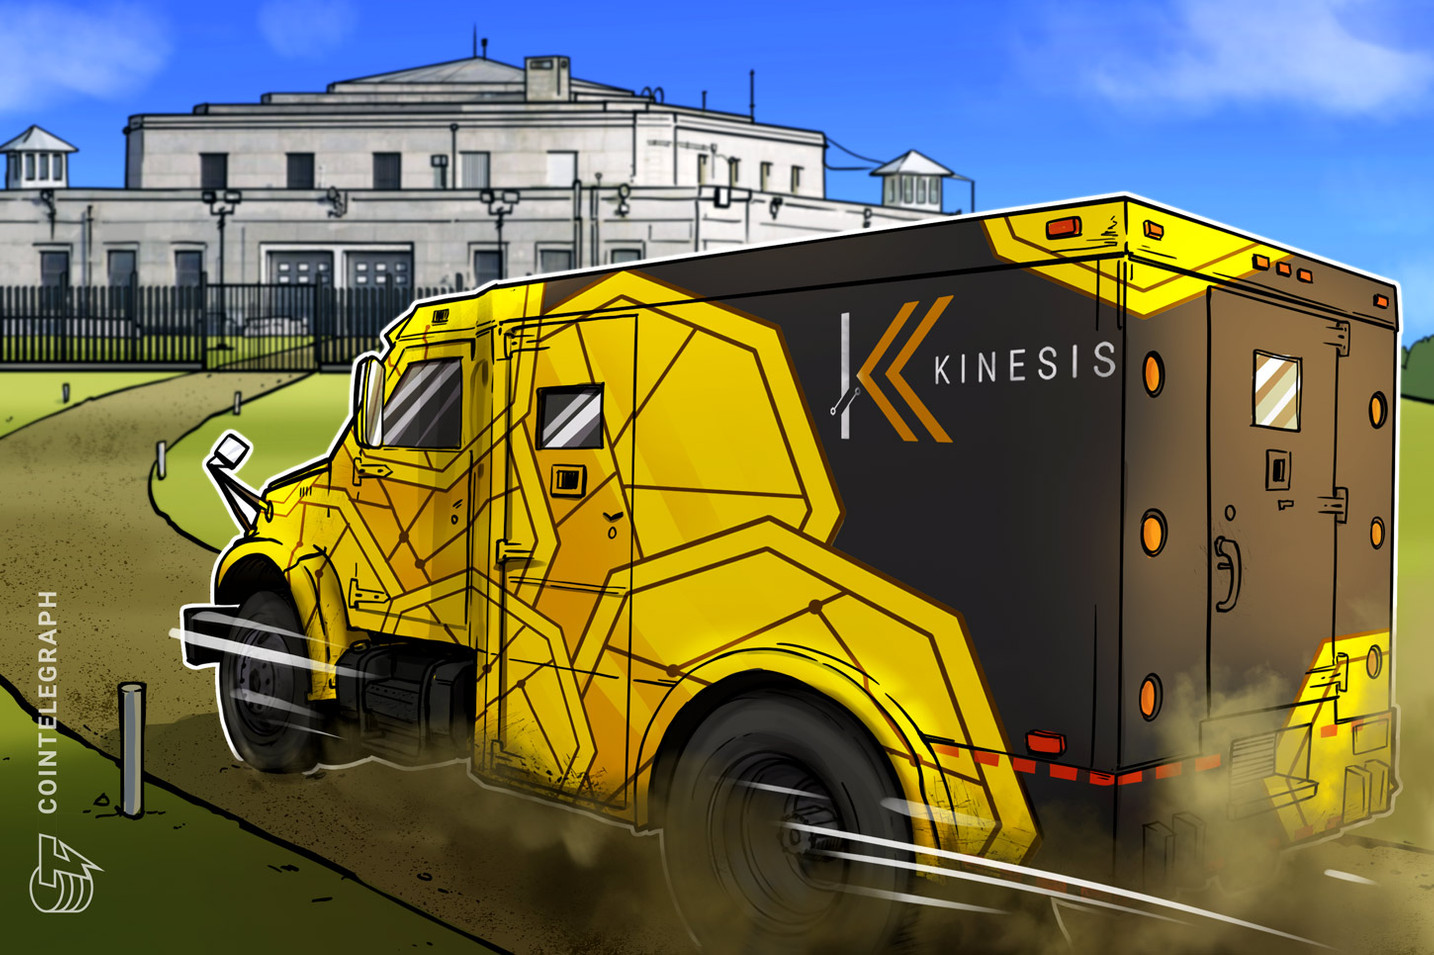 Gold-Based Monetary System to Bring Price Stability to Crypto, Preventing Value Decrease